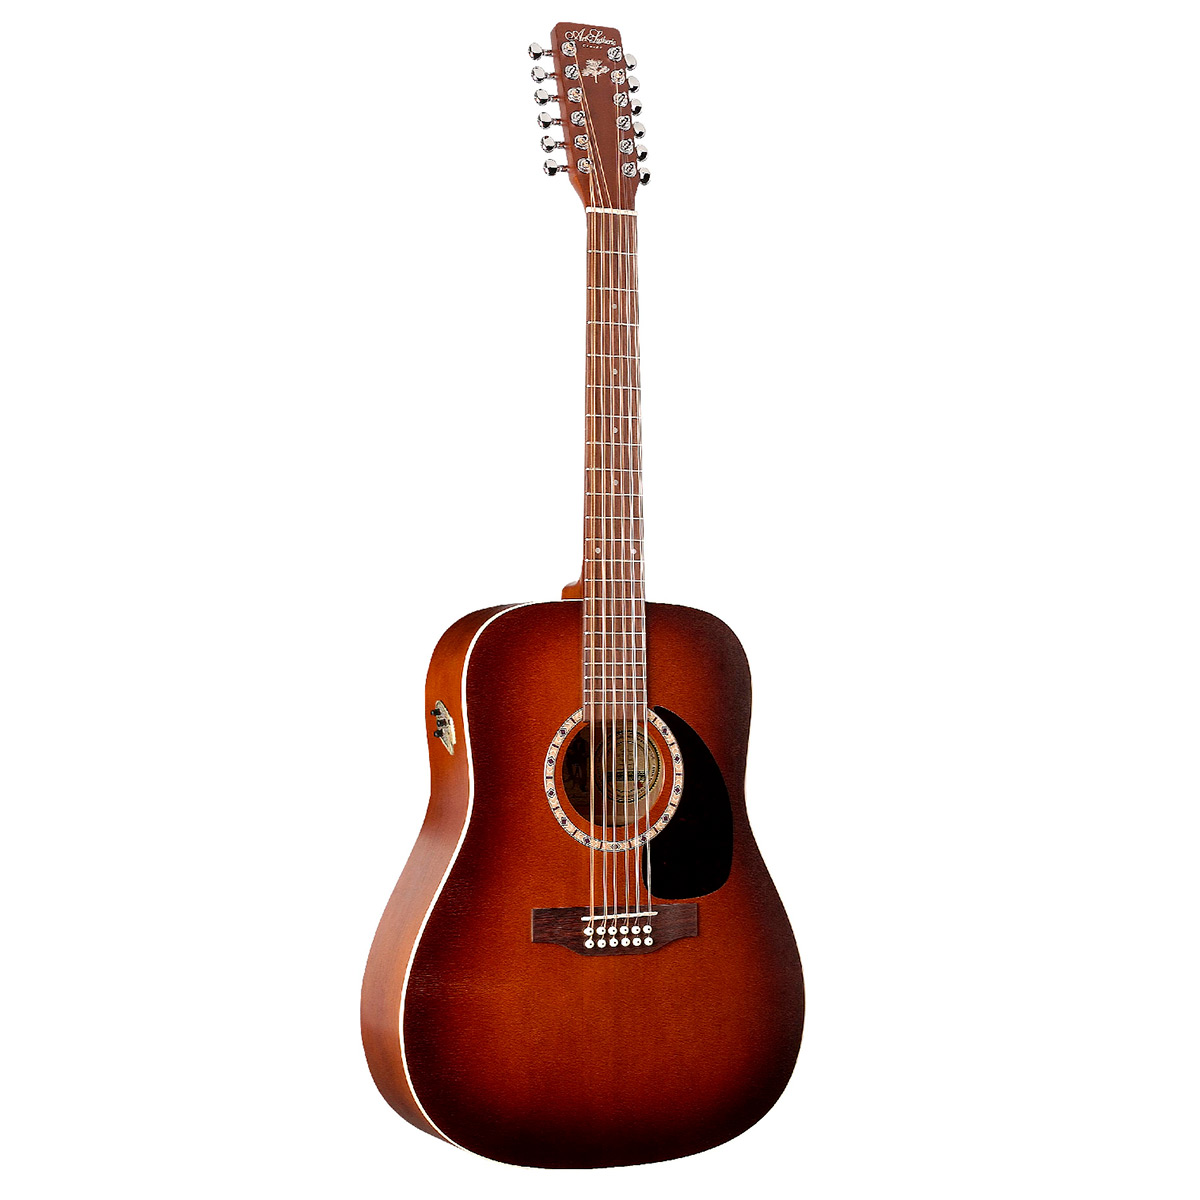 A&L Dreadnaught12CedarQI western-guitar,12-strenget antiqueburst